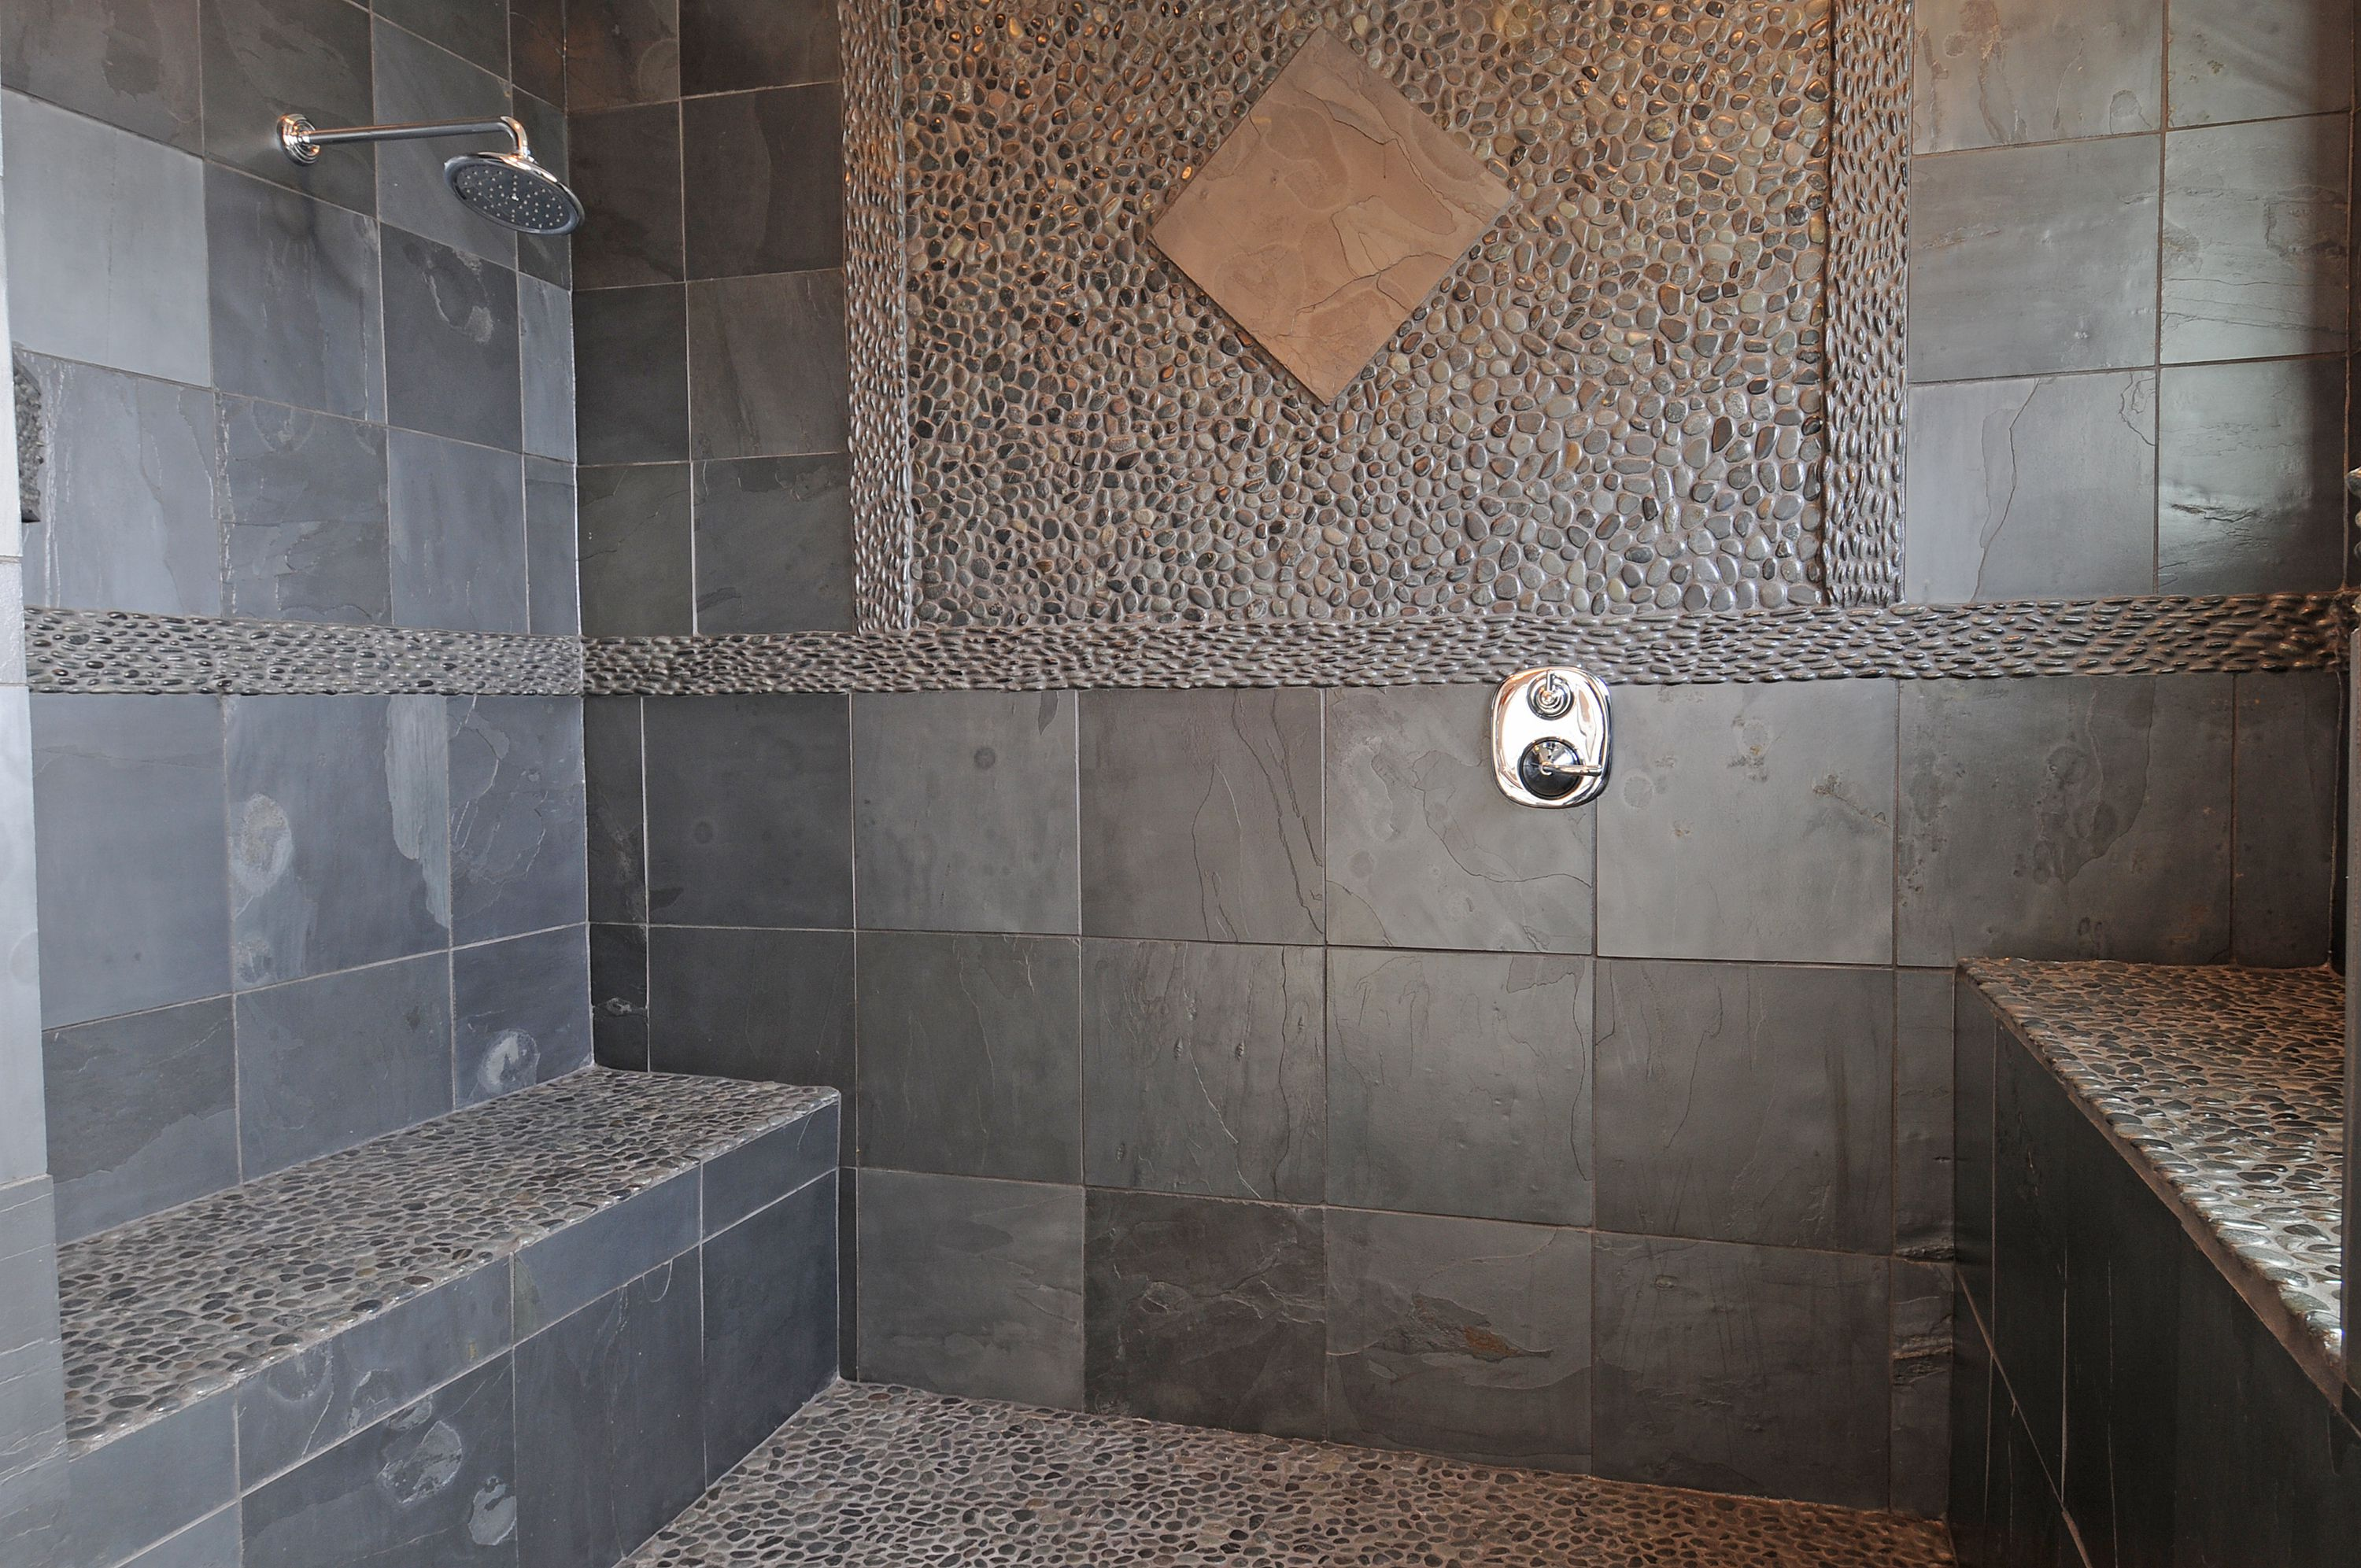 Natural Stone Bathroom Floor - Should You Install It?